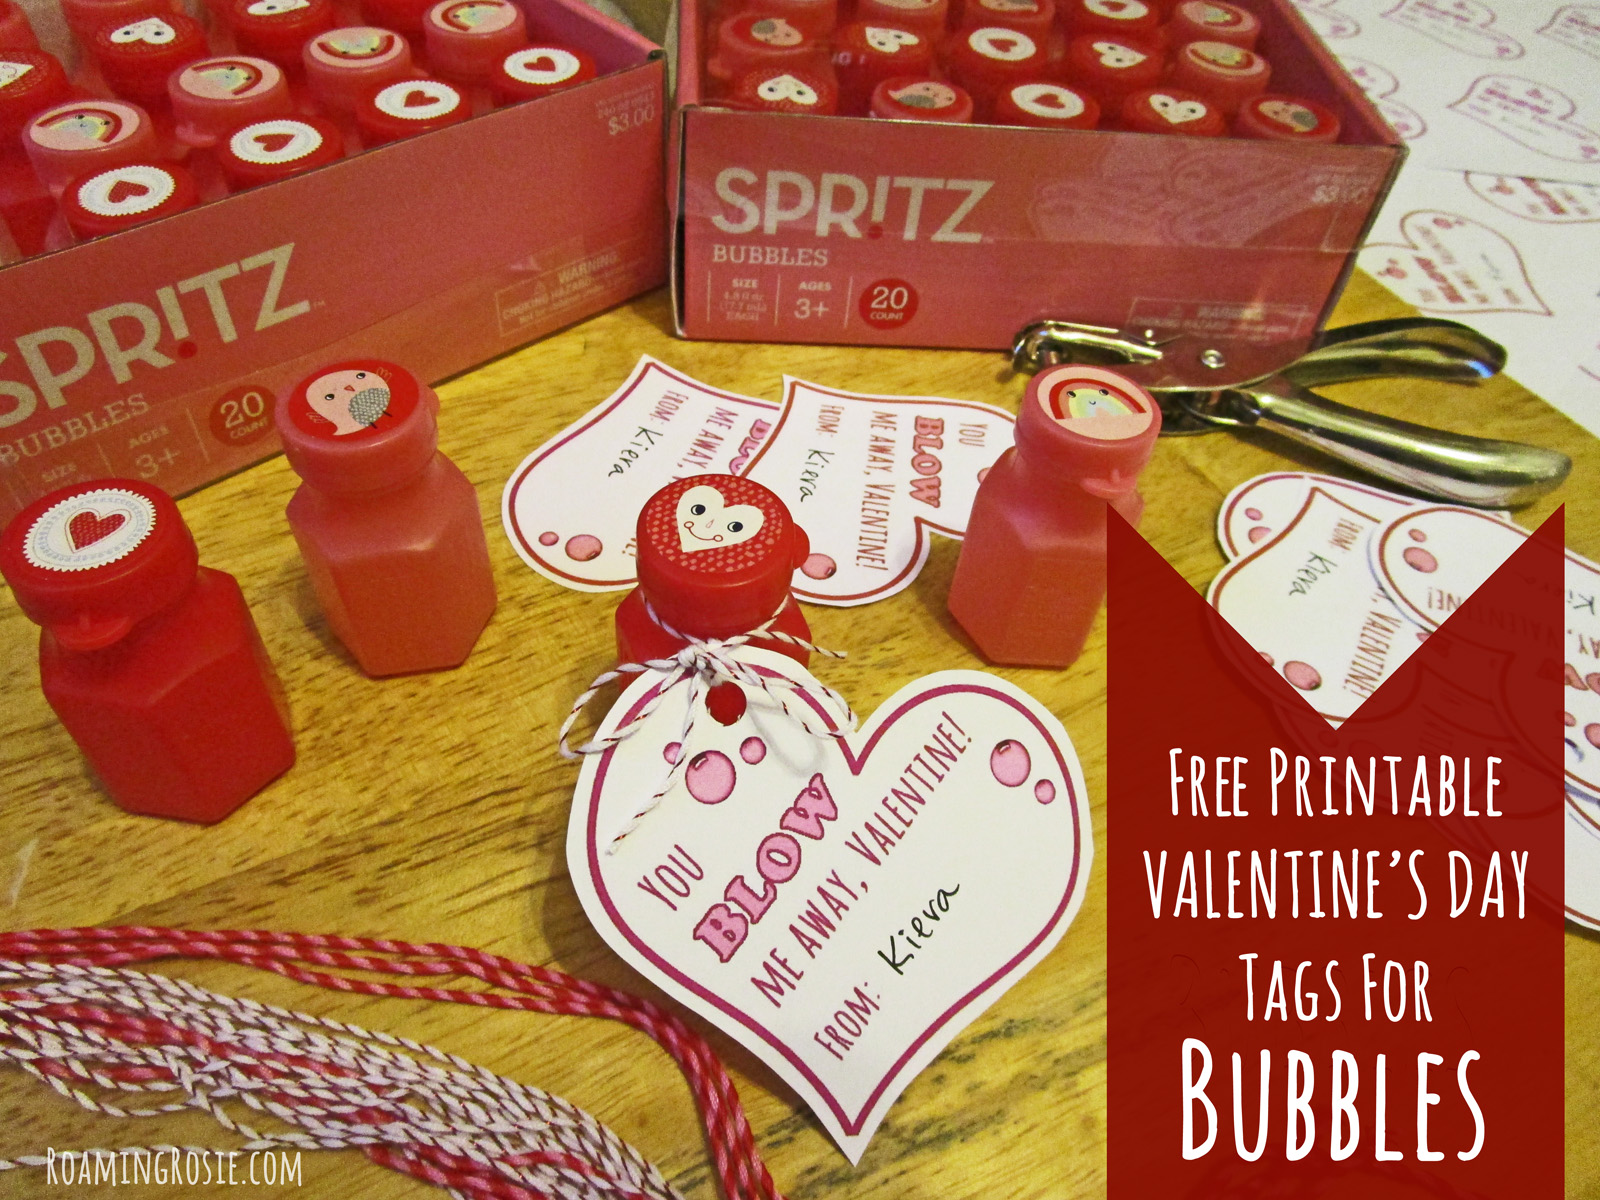 image about Bubble Valentine Printable identified as Valentines Working day Printable Tags for Bubbles Roaming Rosie